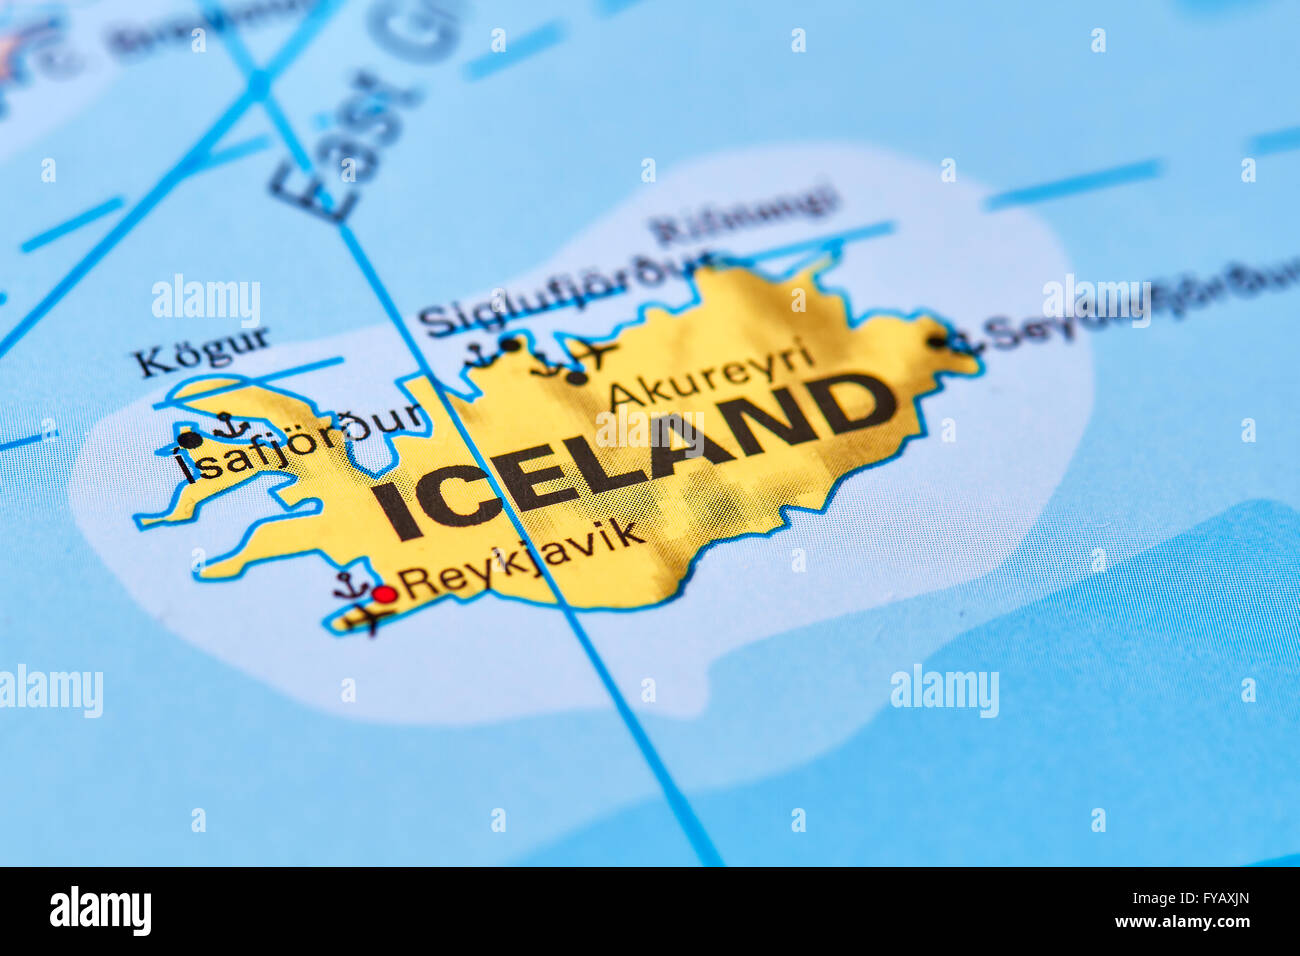 Iceland Country In Europe On The World Map Stock Photo Royalty - Iceland map world